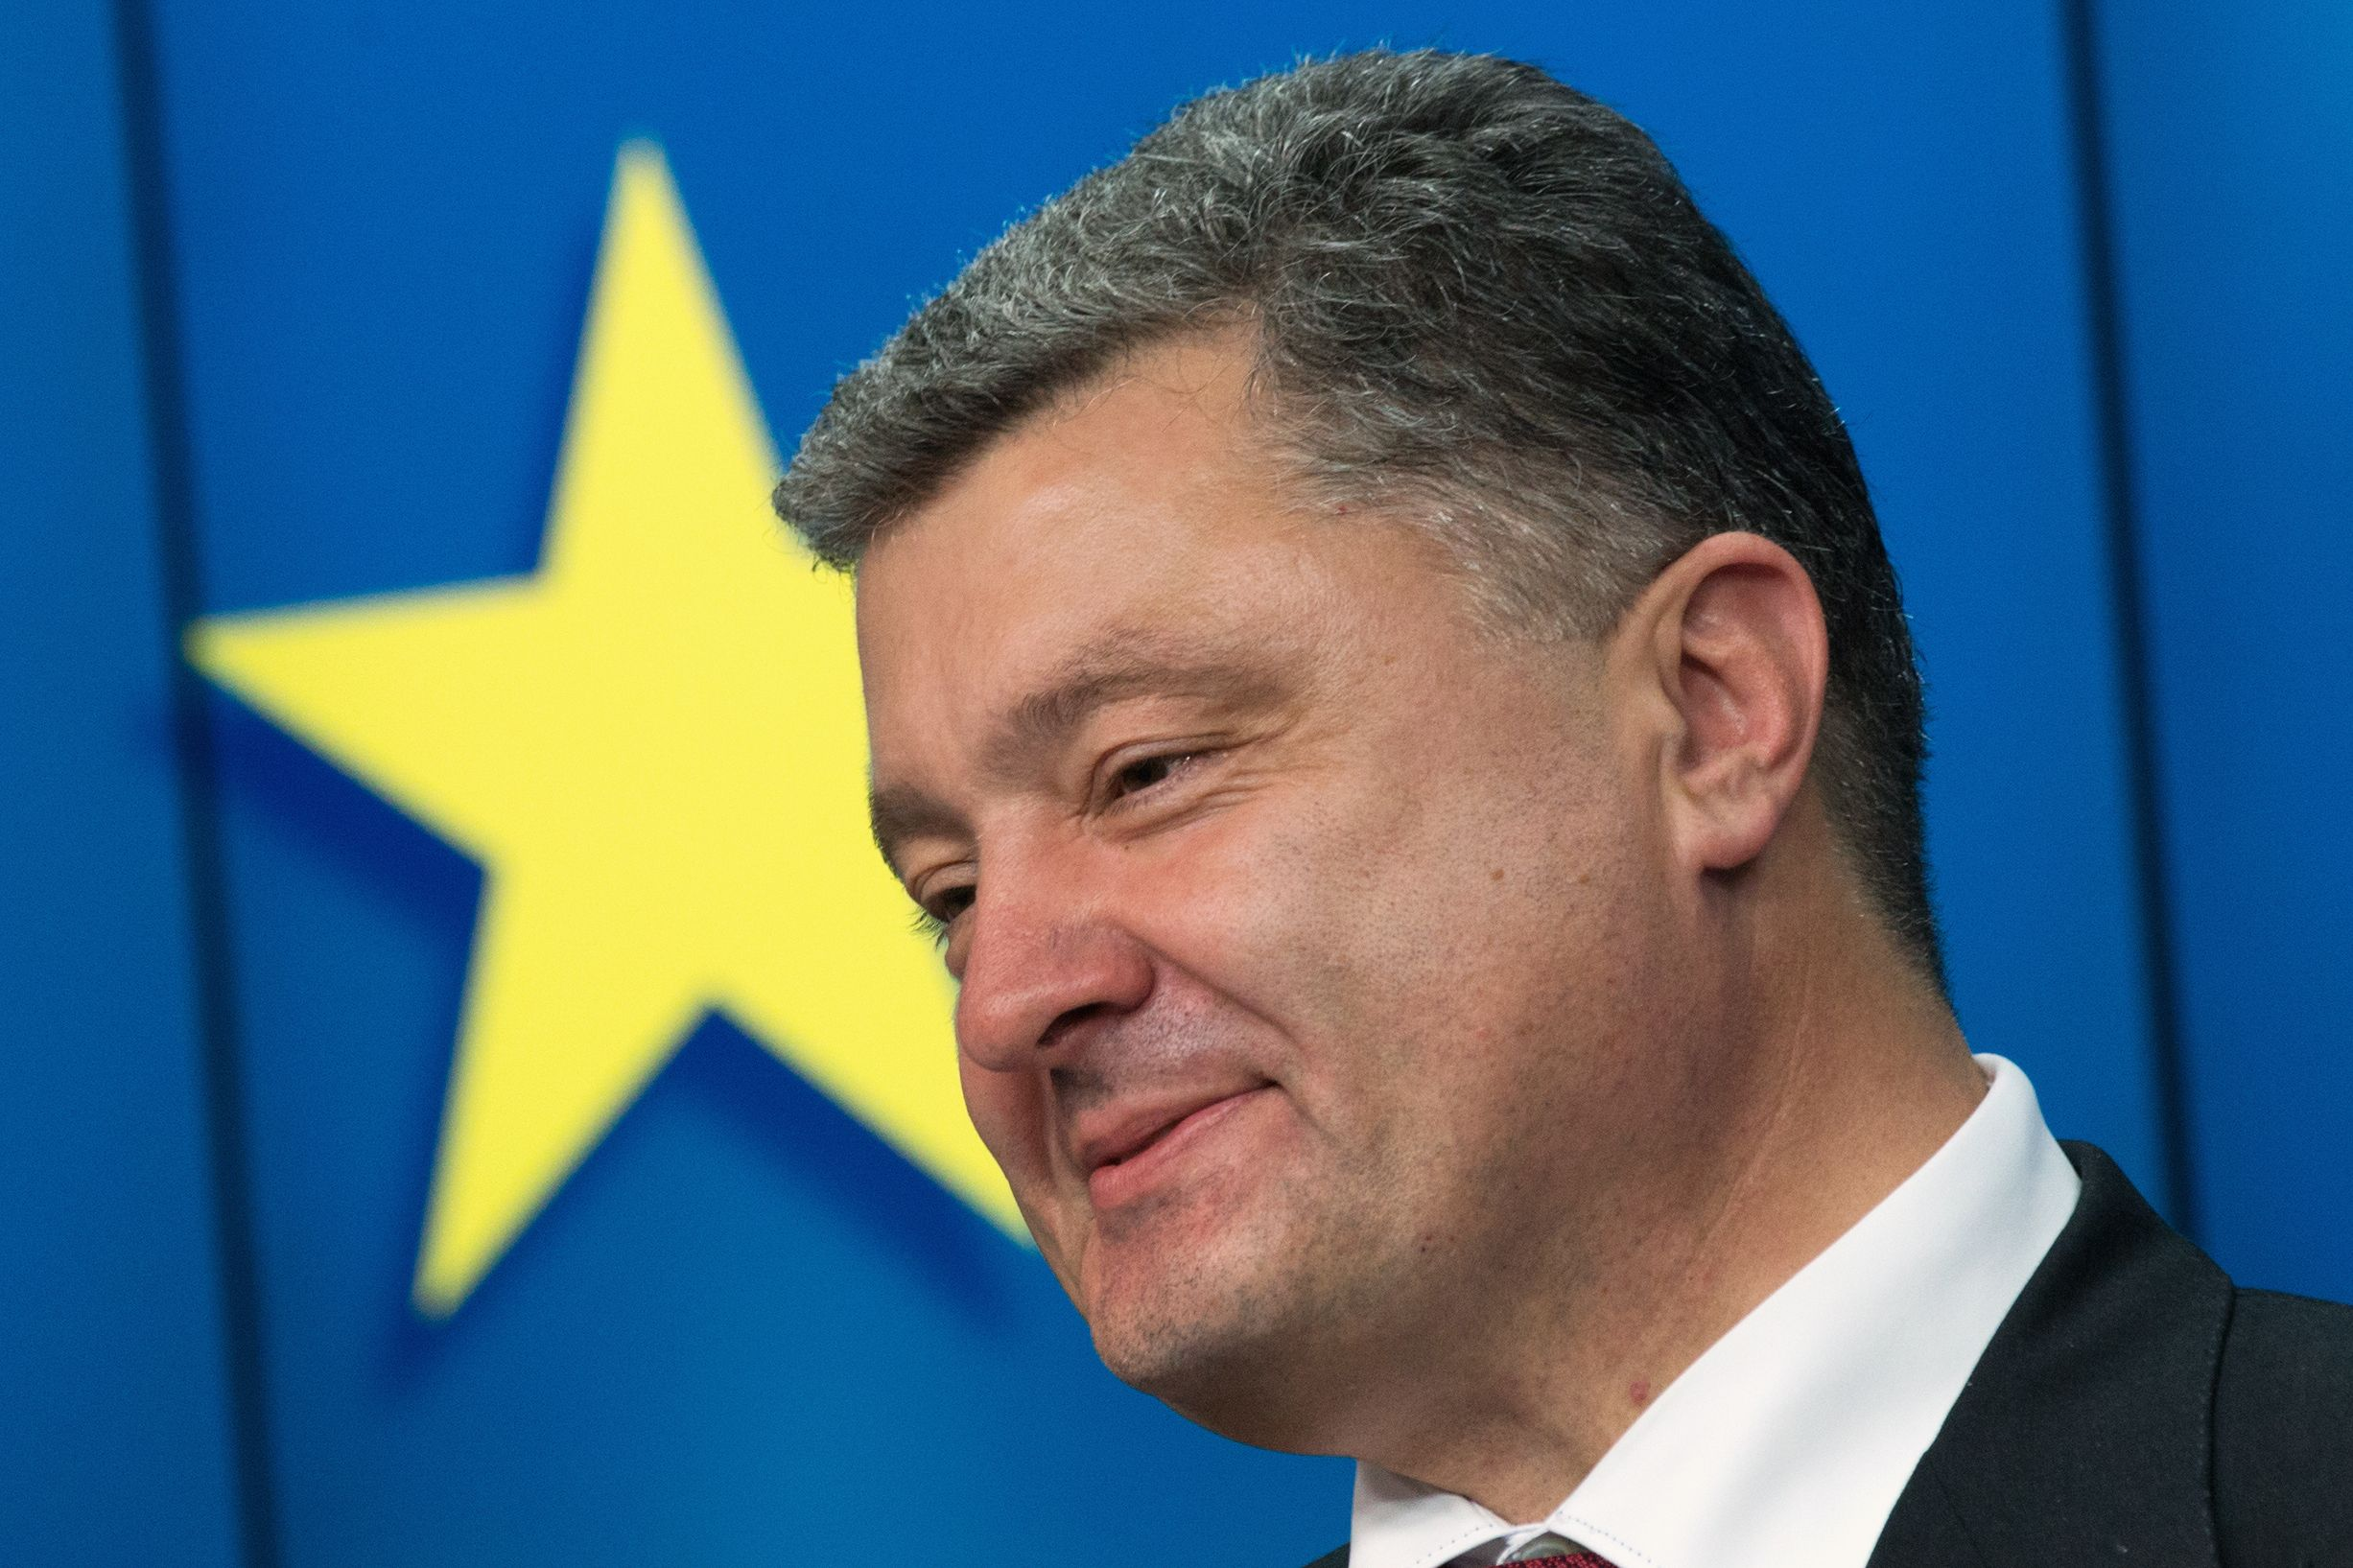 EU Edges to Economic Sanctions on Russia but Narrows Scope